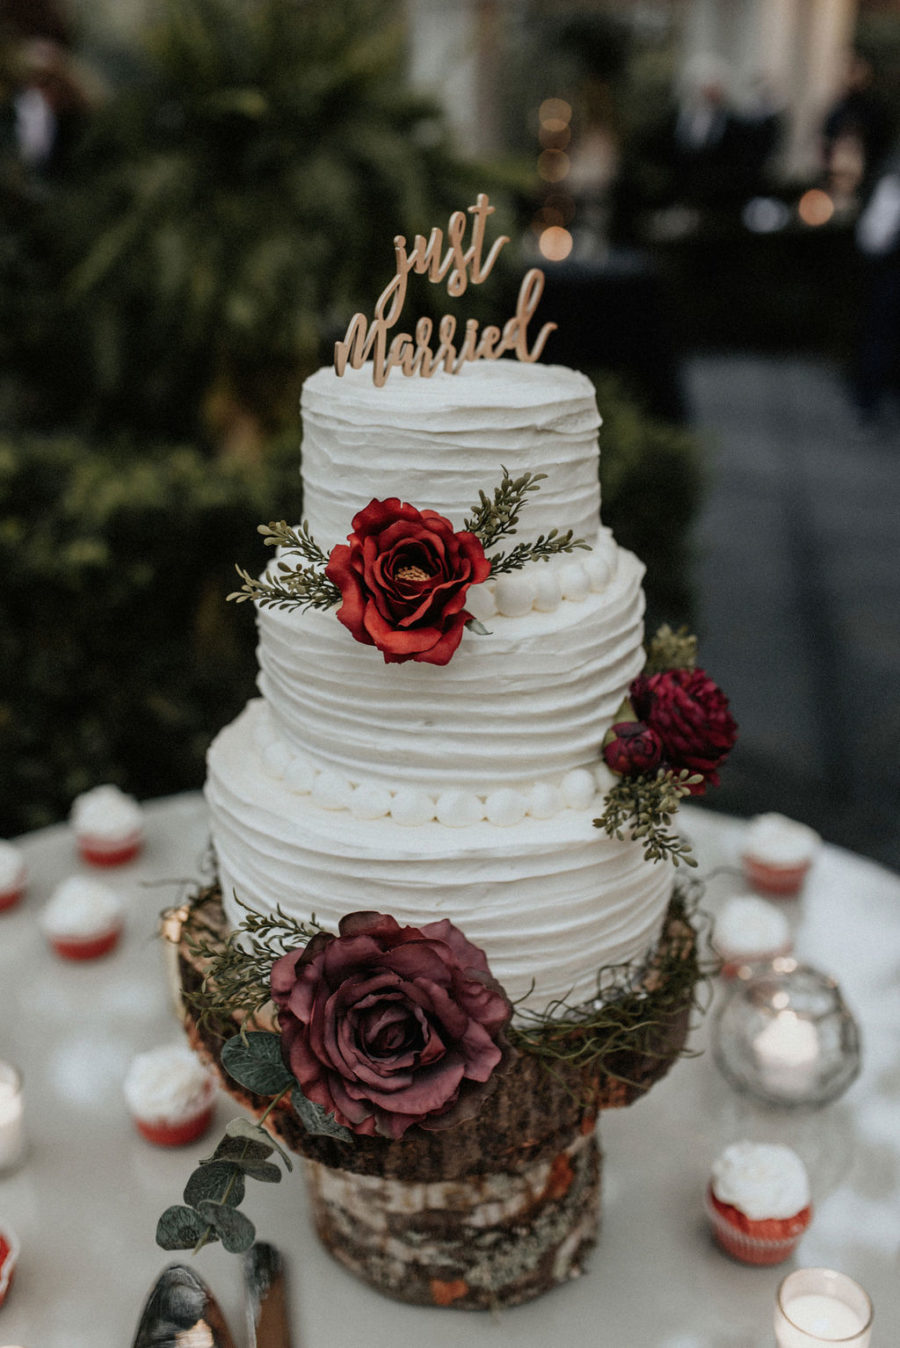 Winter wedding cake: Magical Winter Wedding by Meghan Melia Photography featured on Nashville Bride Guide!